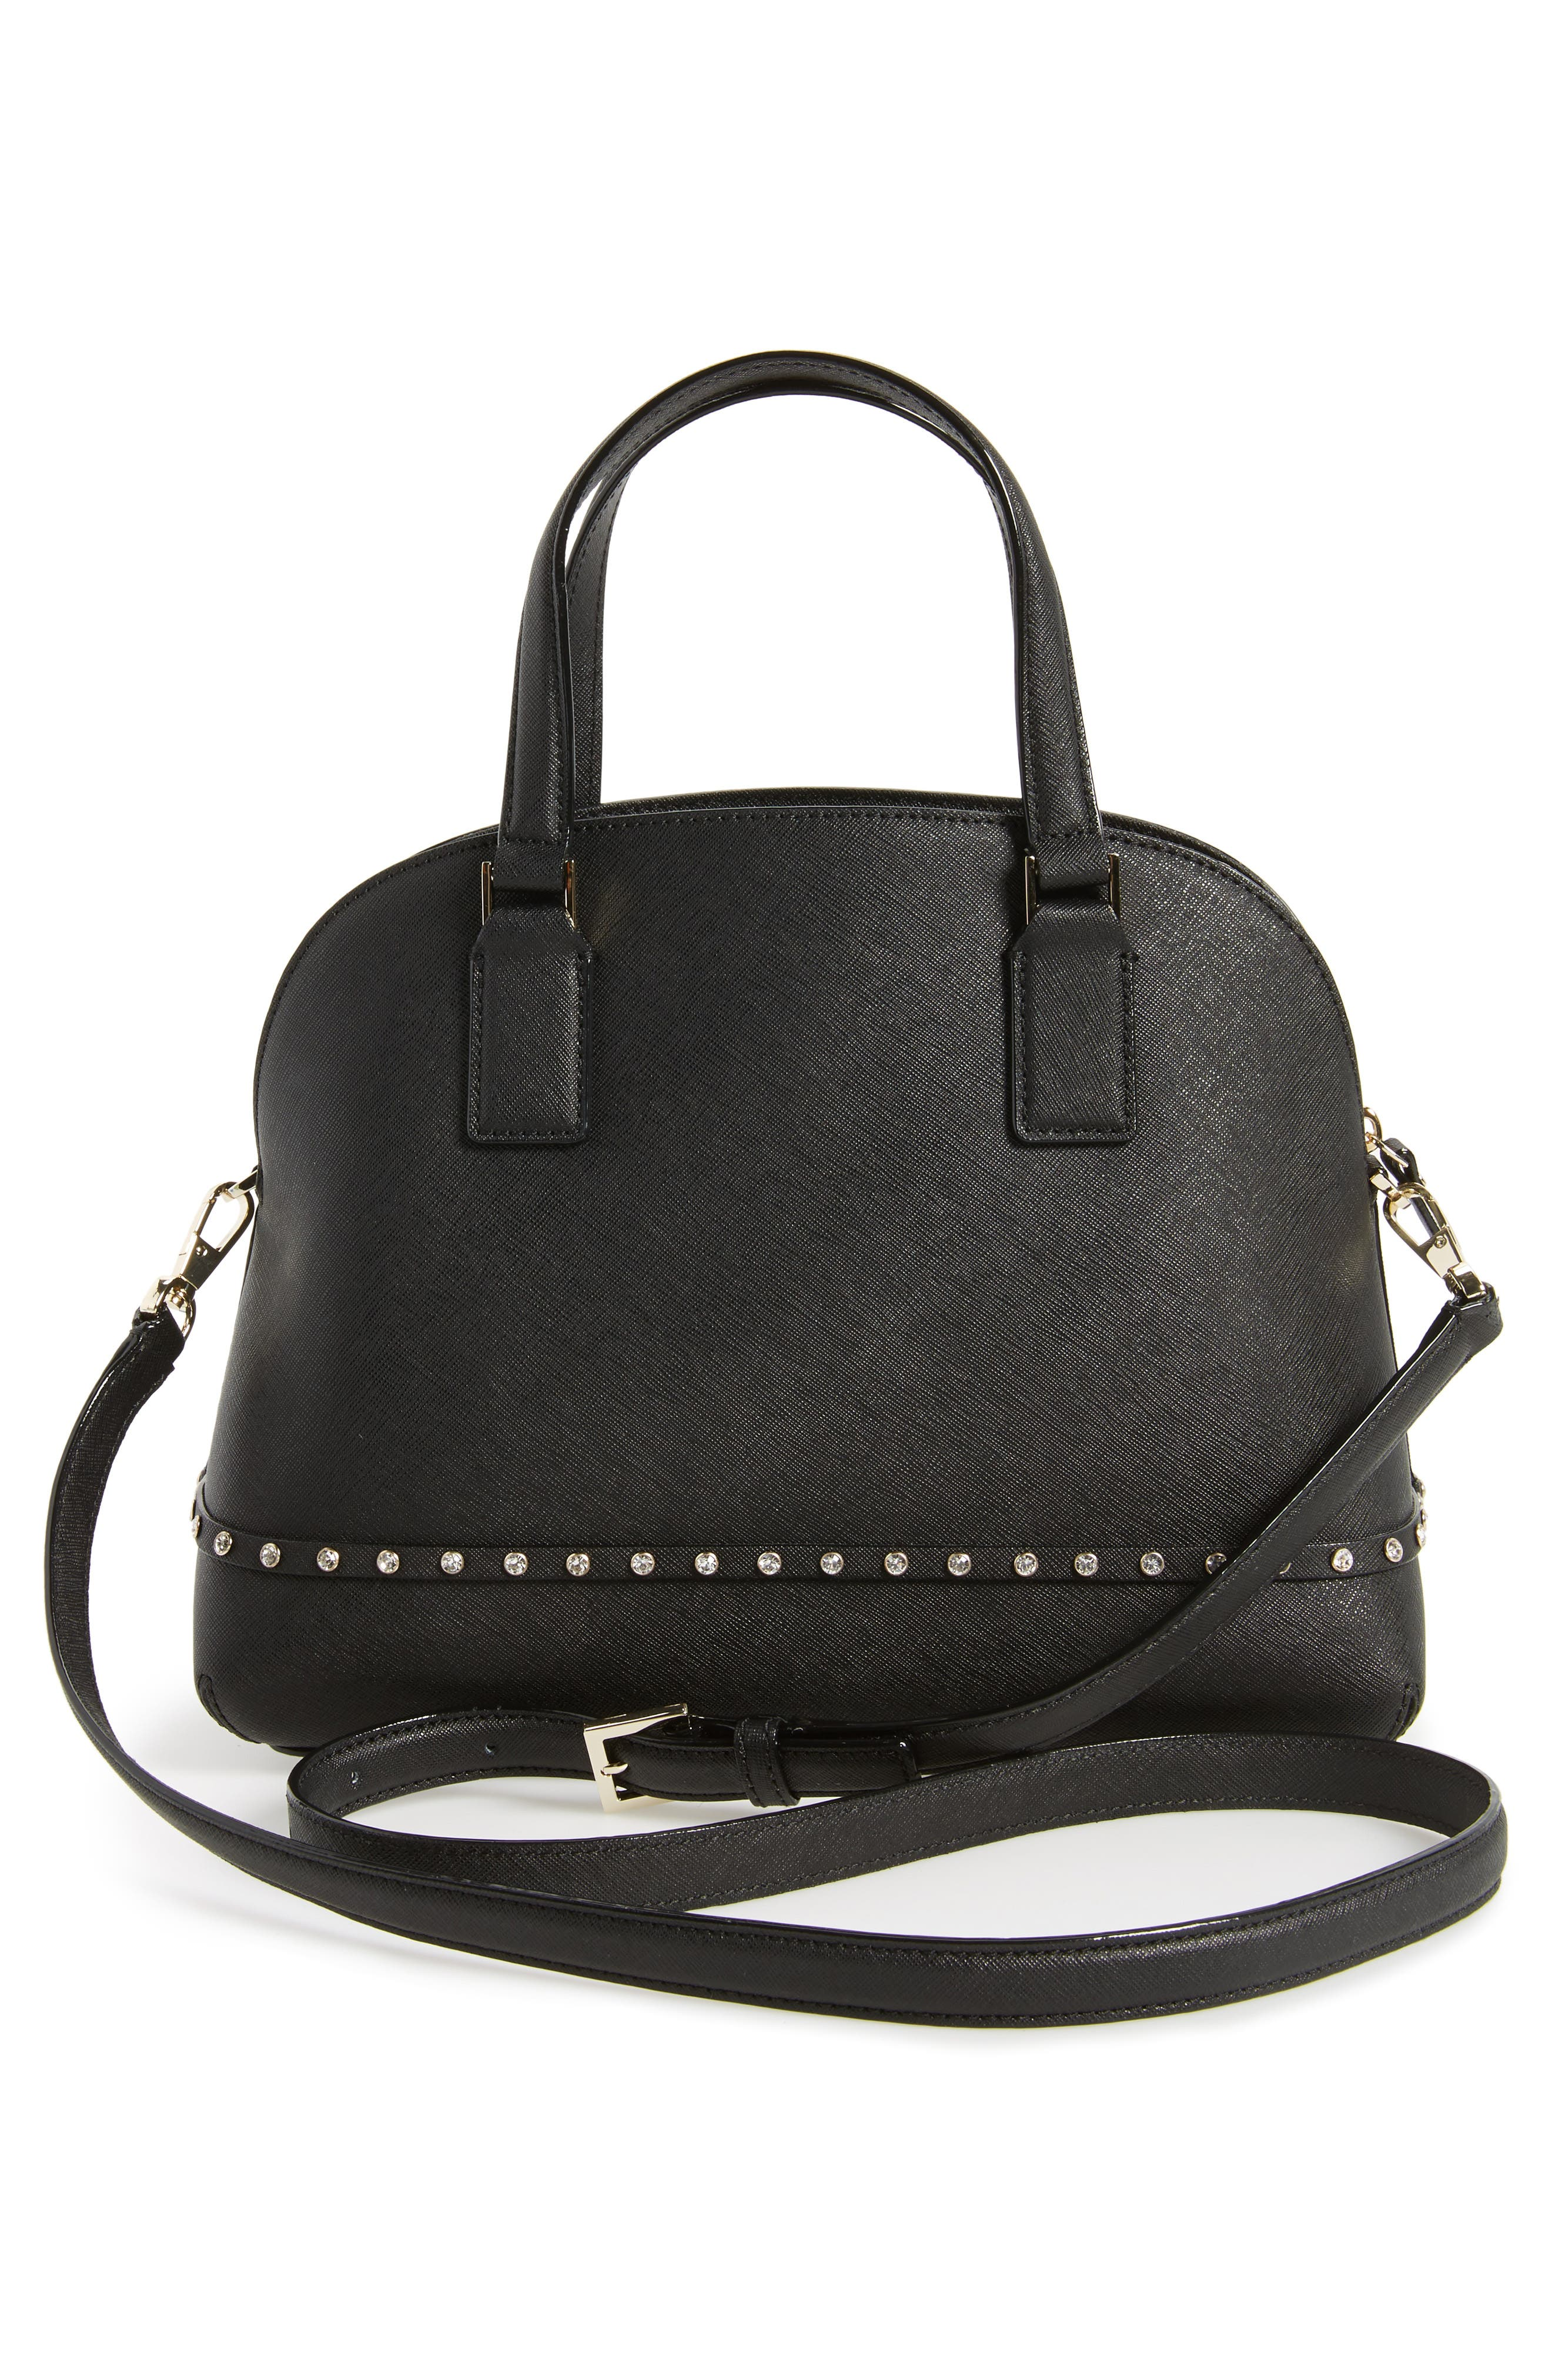 cameron street - jeweled lottie leather satchel,                             Alternate thumbnail 3, color,                             001